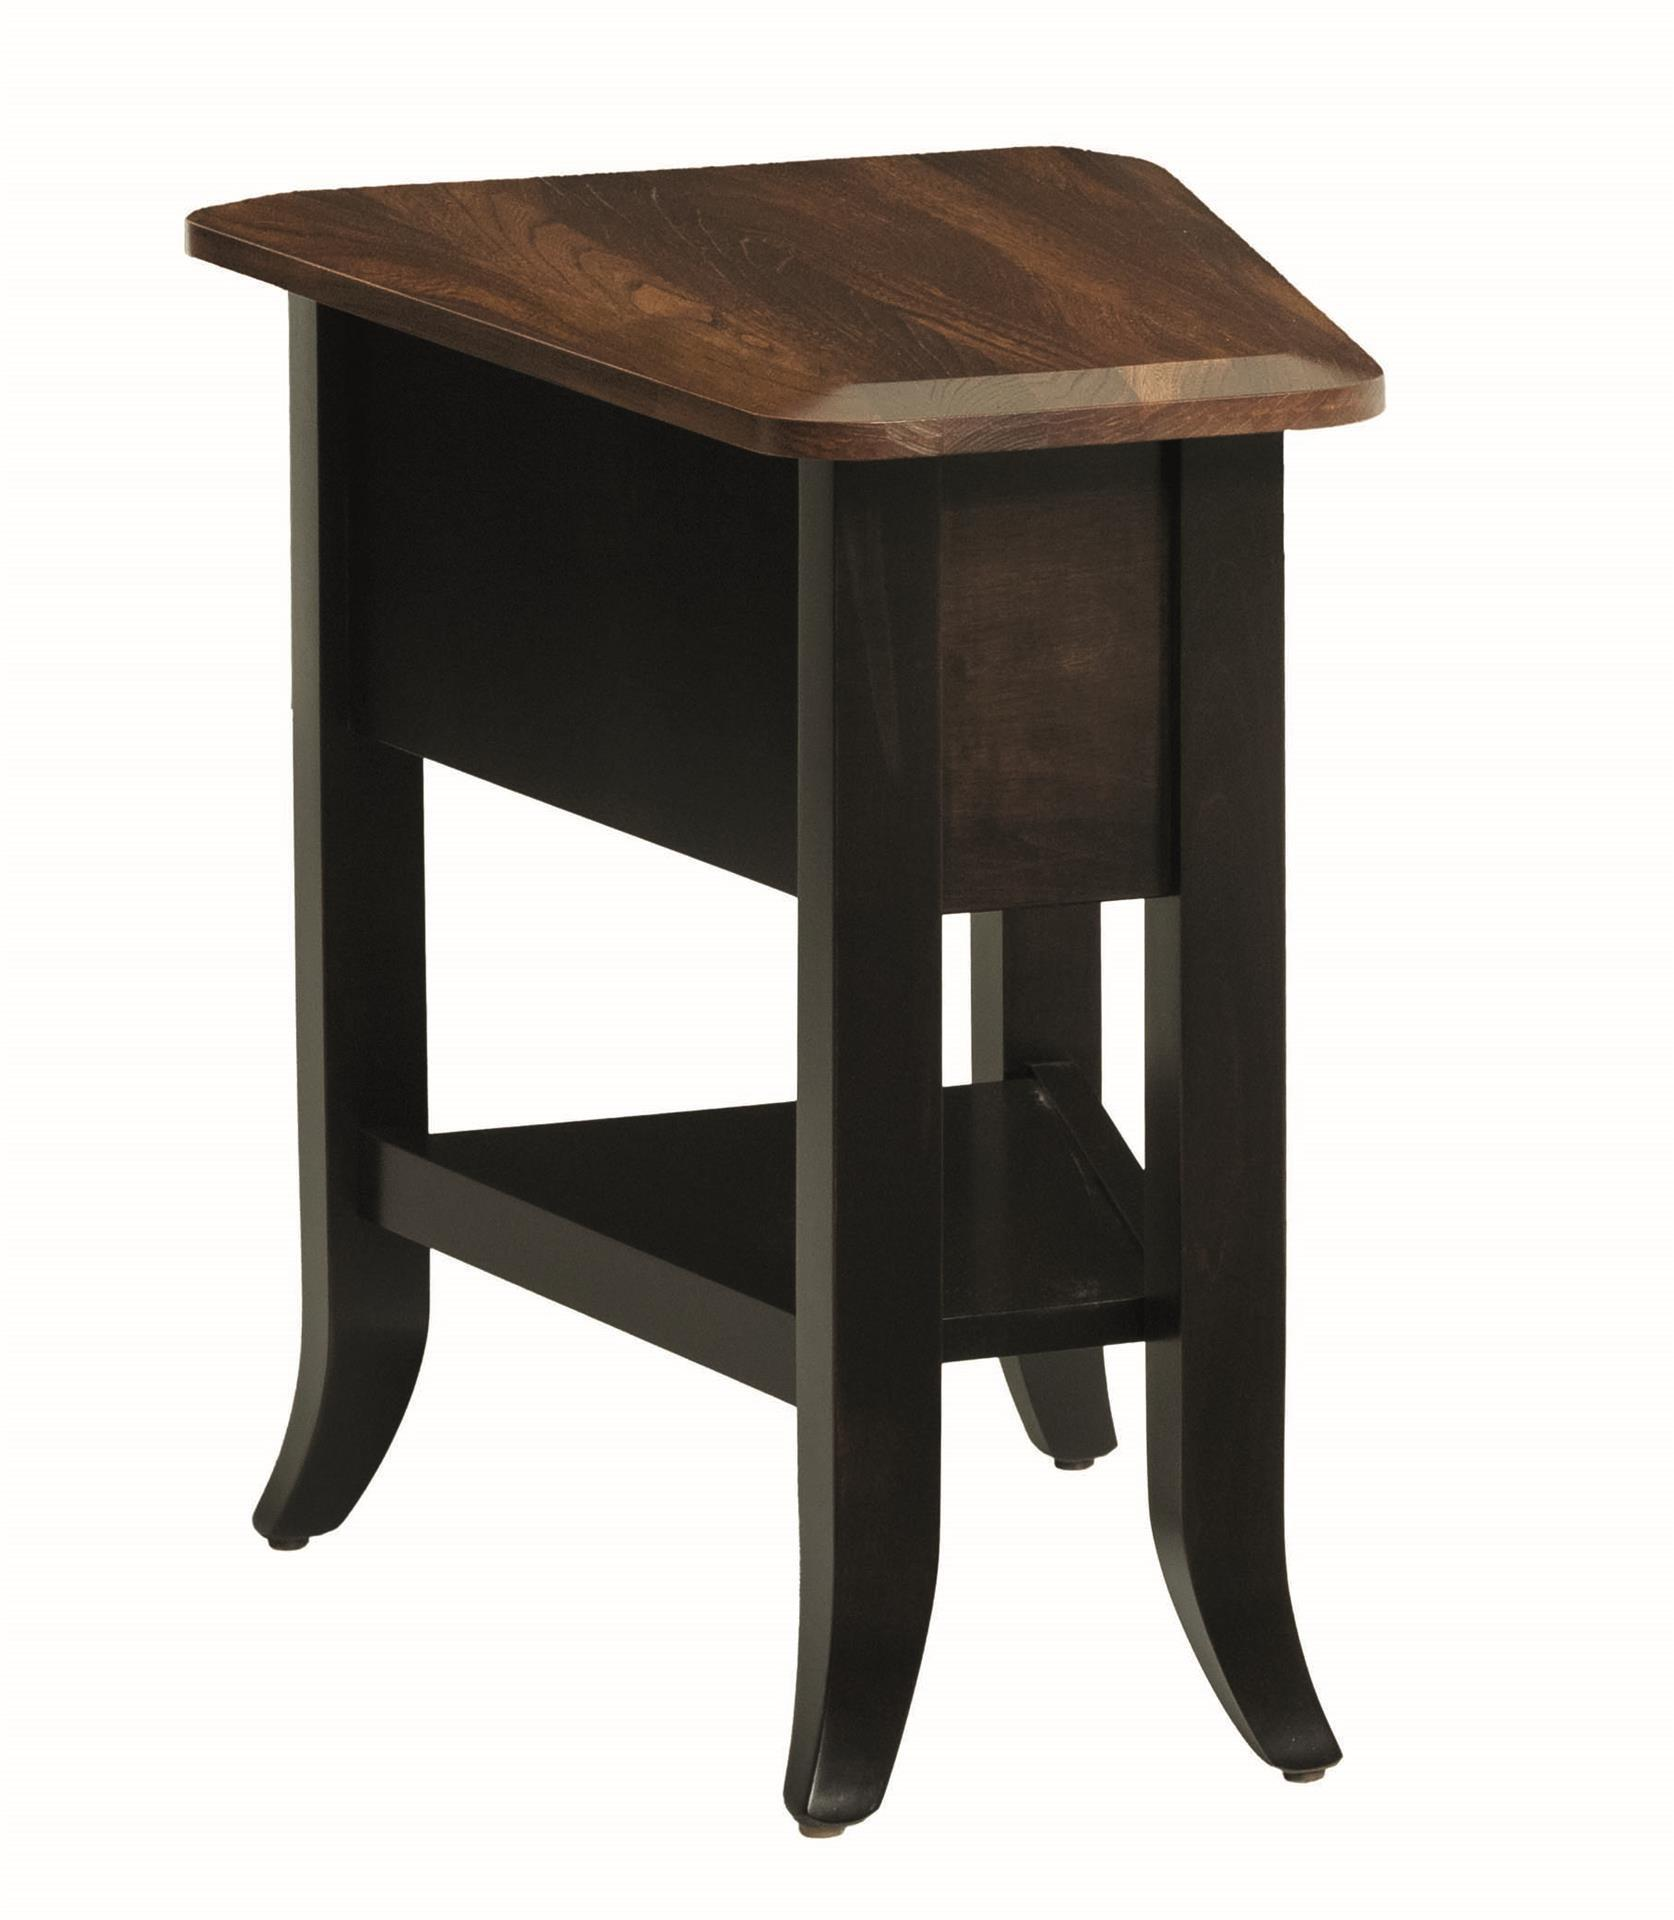 Christy Wedge Table From Dutchcrafters Amish Furniture